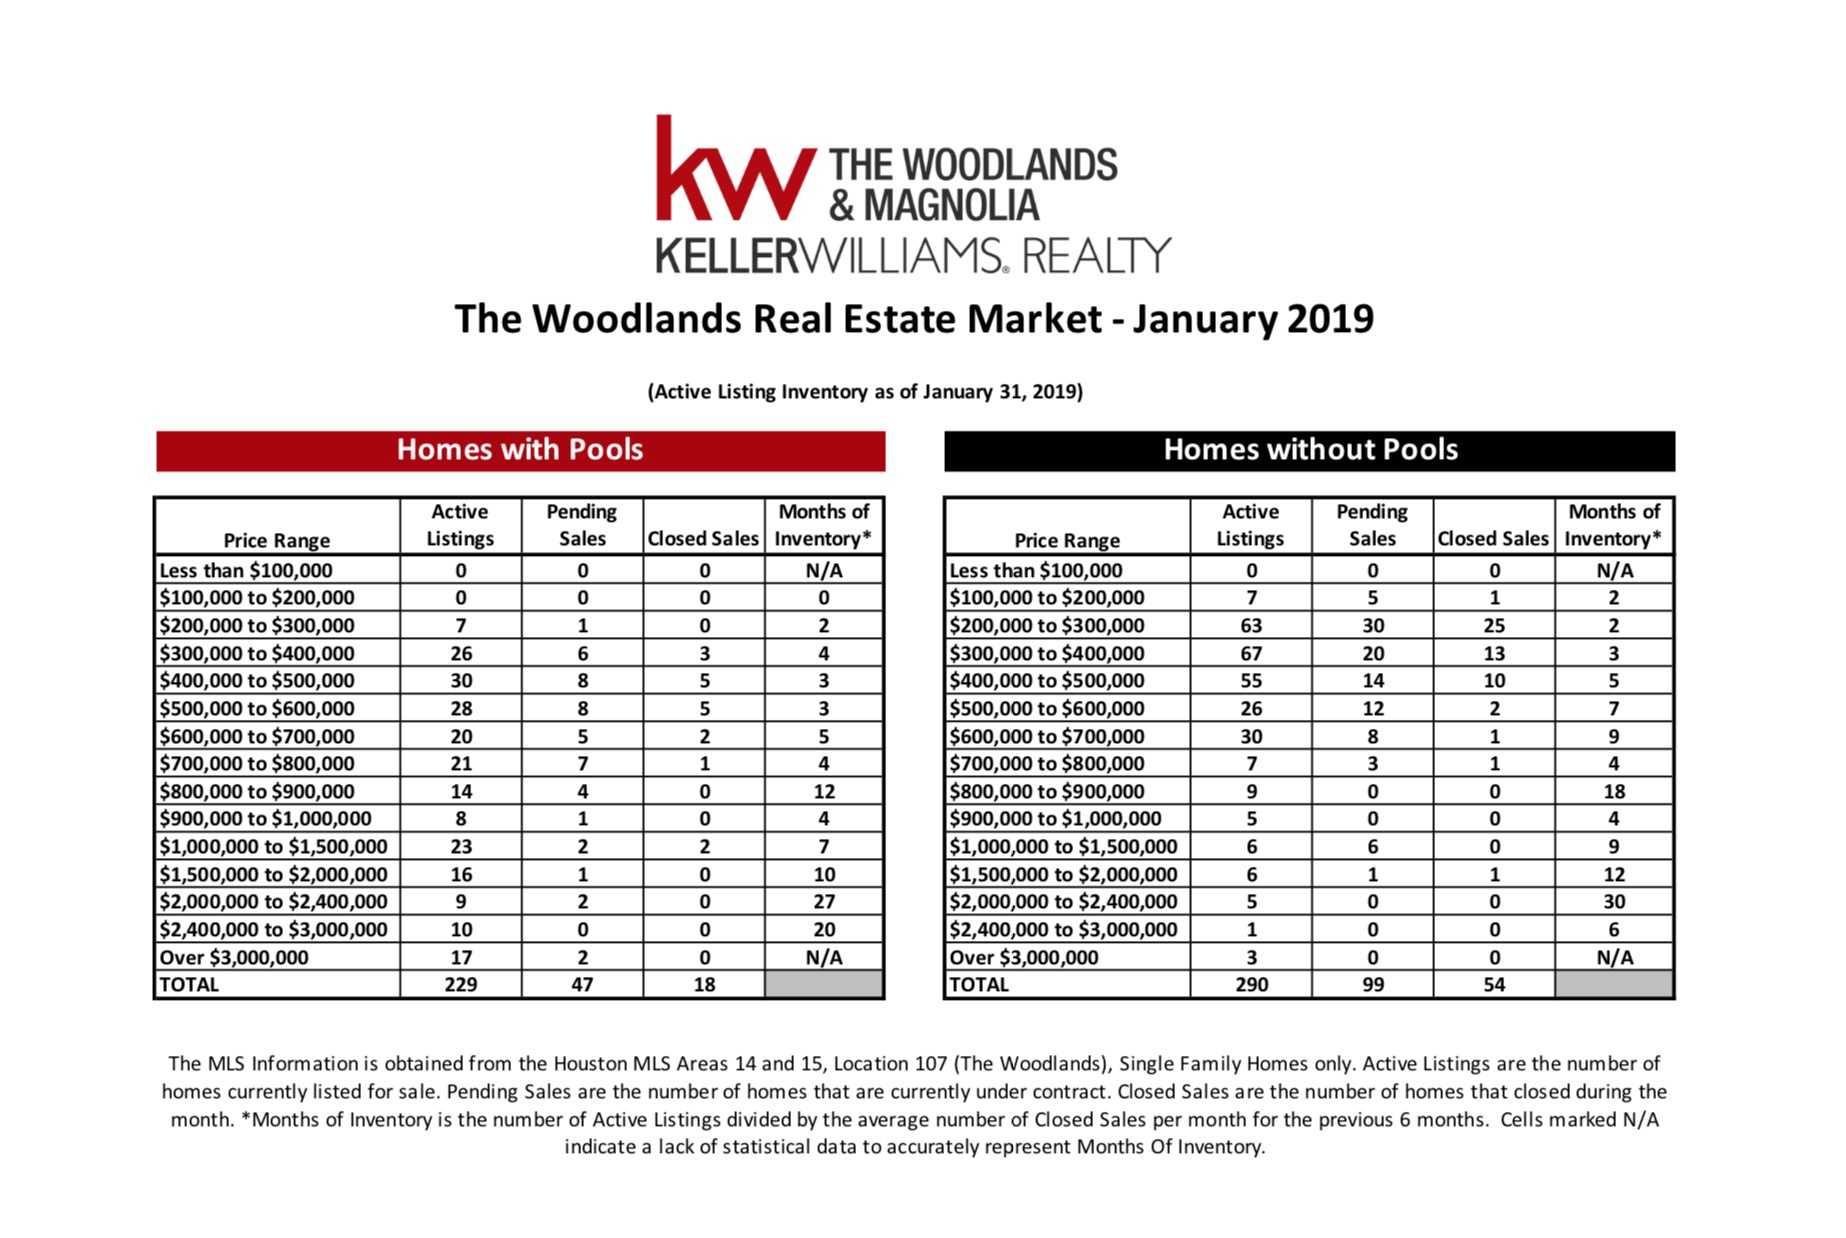 , January 2019 MarketWatch Report – The Woodlands, KW Woodlands, KW Woodlands